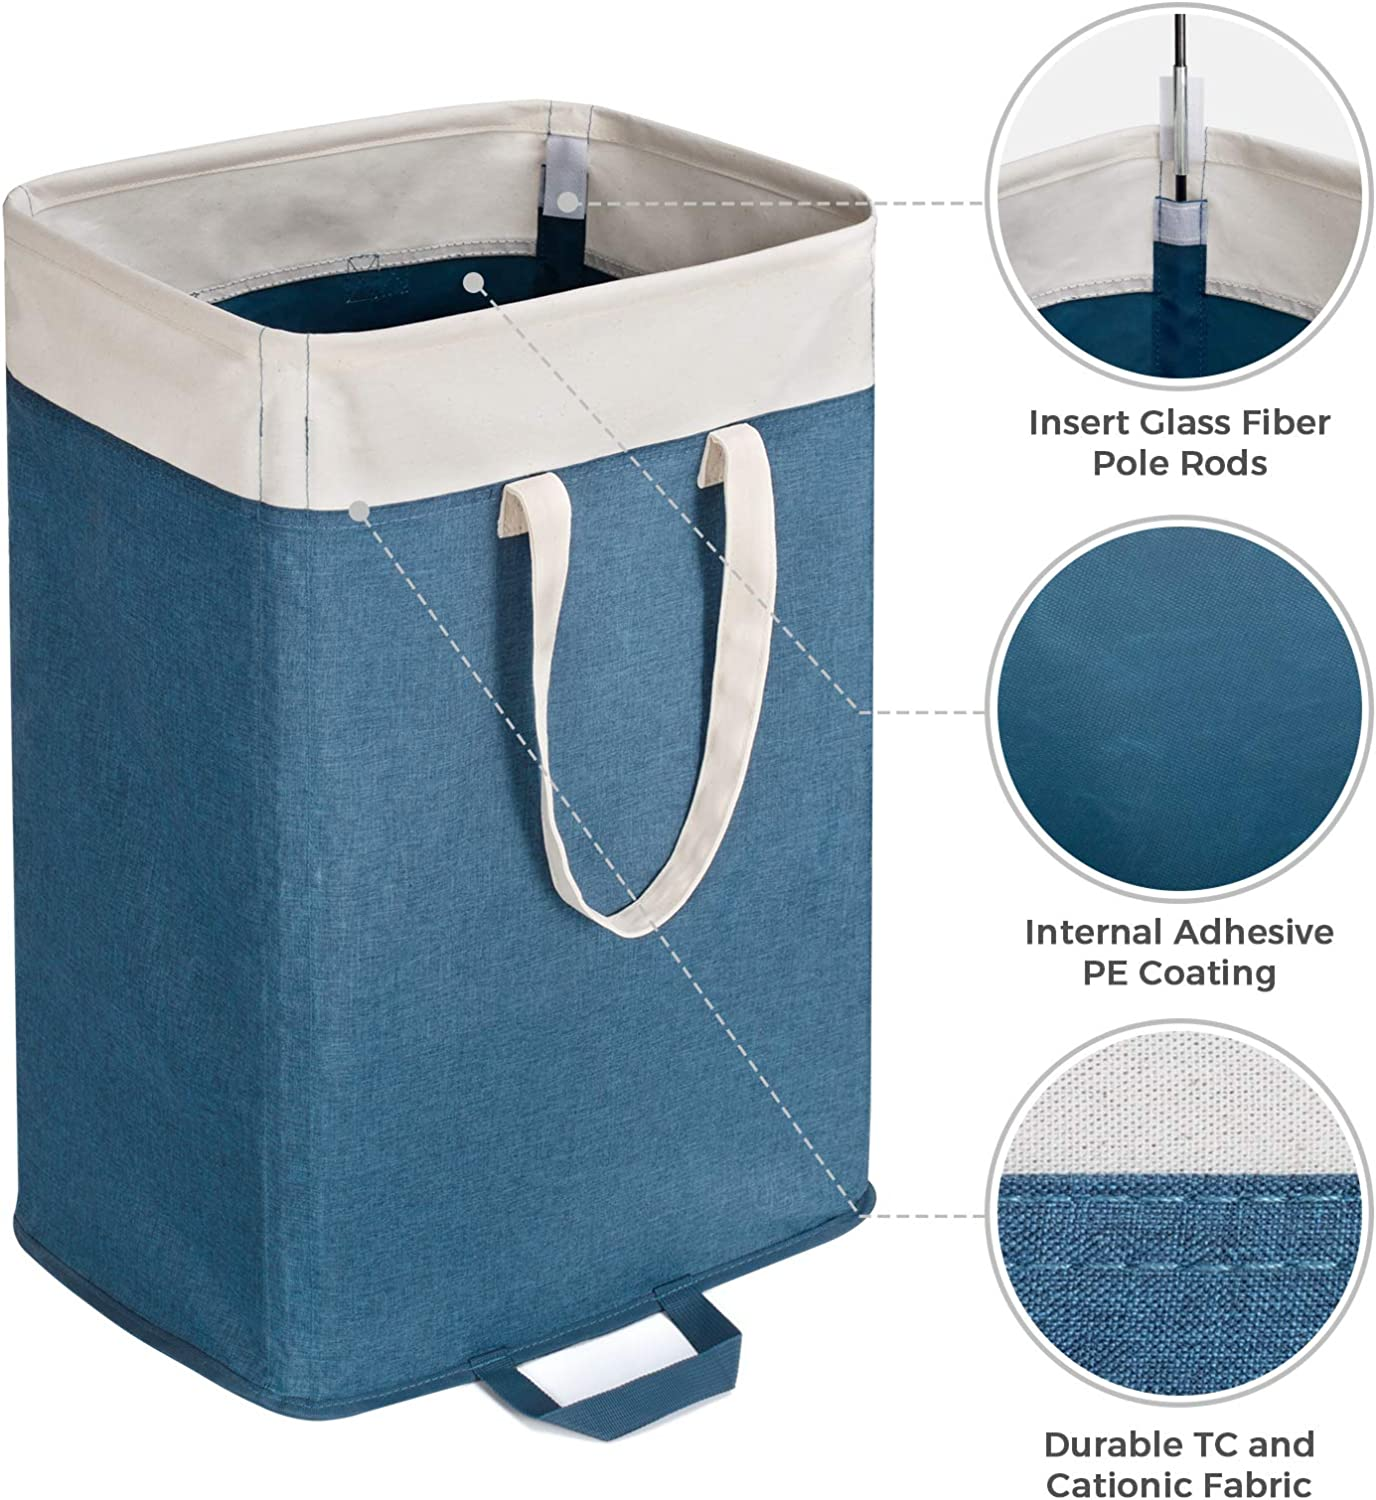 Blue Lifewit Laundry Basket with 2 Removable Laundry Bags Large Collapsible Dirty Clothes Hamper with Handles Built in Lining with Detachable Brackets Toys and Clothing Organization Storage Basket